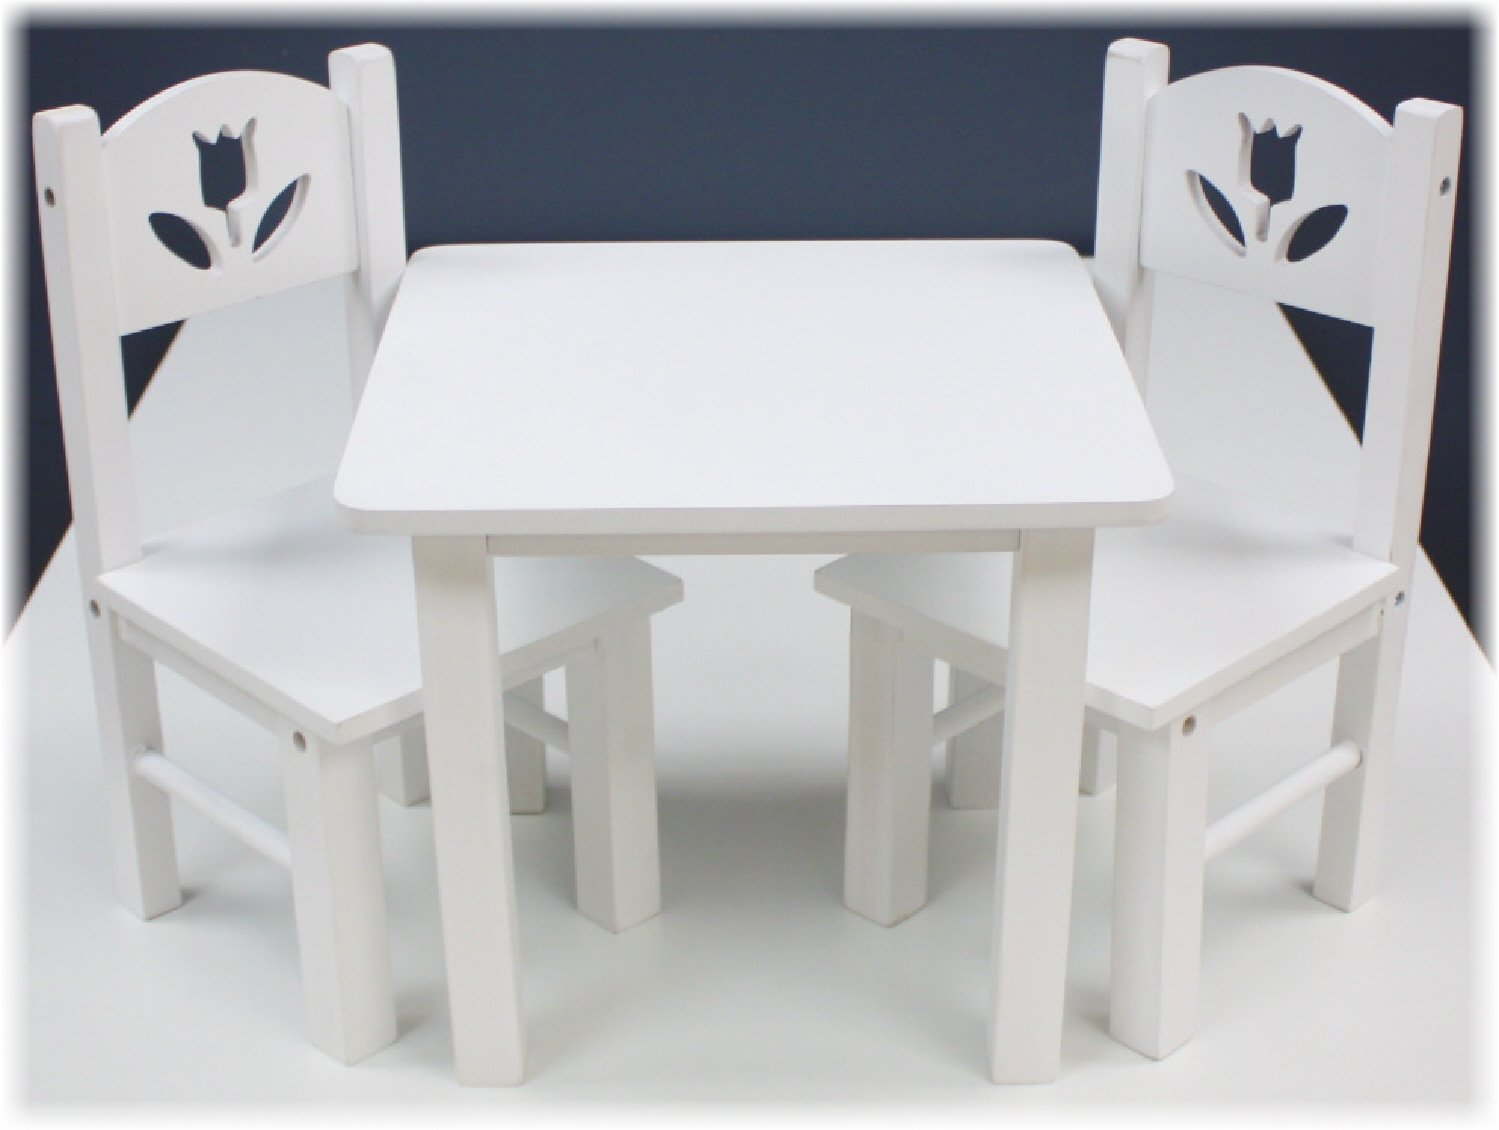 """Real Wood Toys 18 Inch Doll Furniture- Wooden Table and Chairs Set - (18"""" White Floral) Fits American Girl Dolls"""